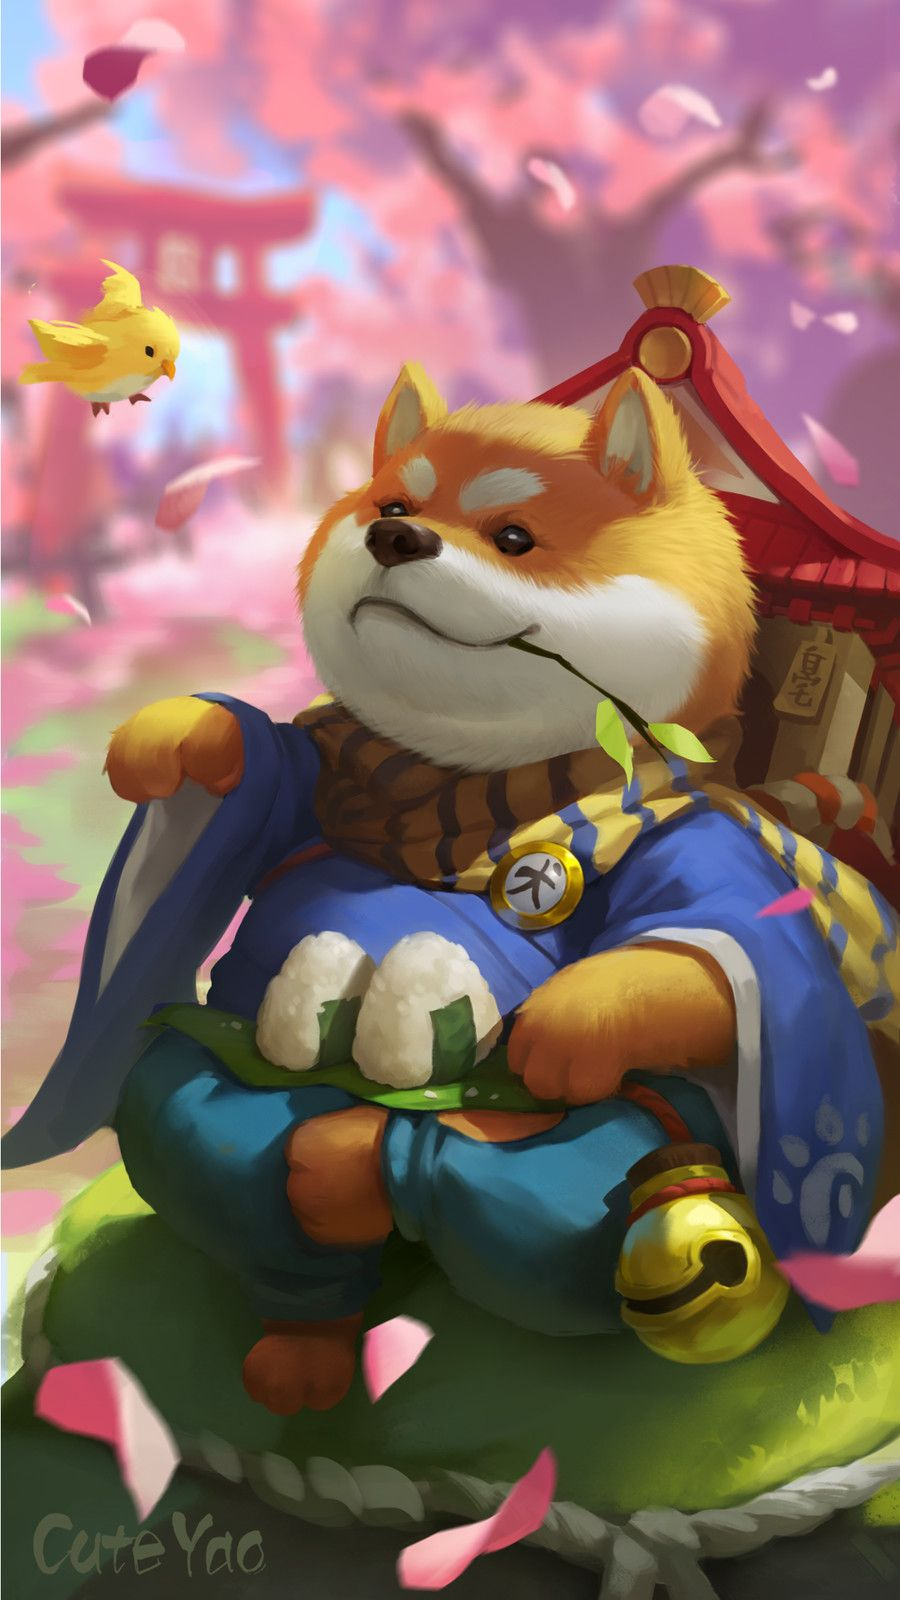 Shiba Inu,doge, Lu Yao on ArtStation at https://www.artstation.com/artwork/OXrq6